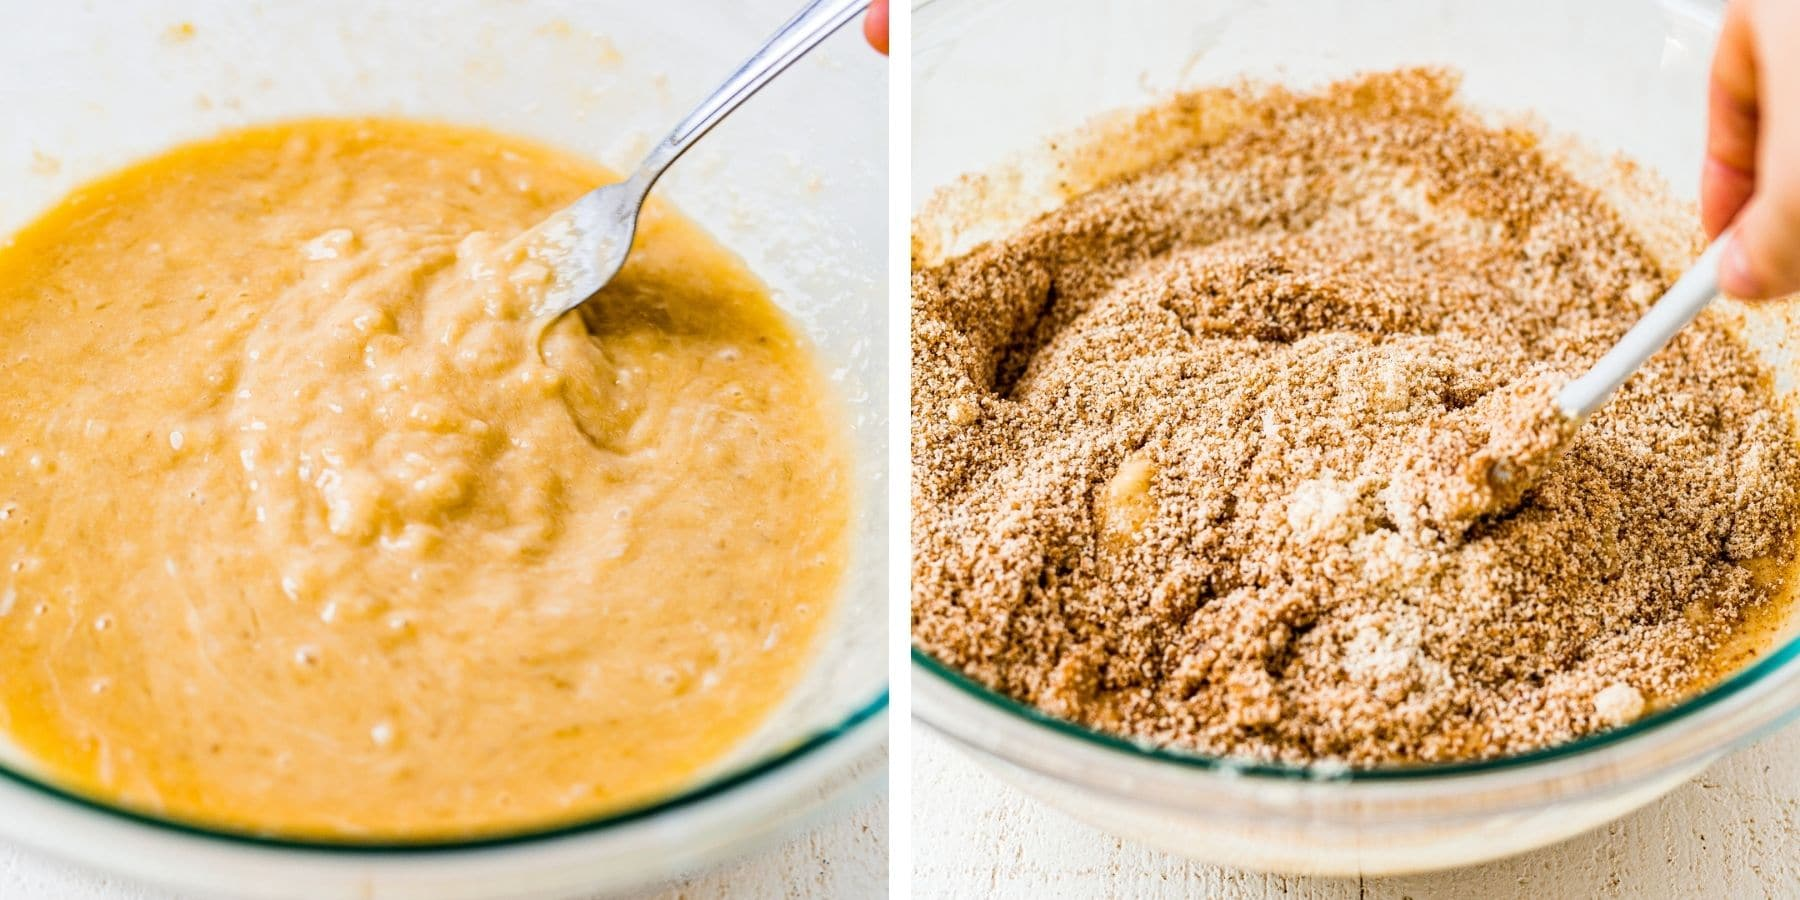 step by step pictures showing how to mix the wet and dry ingredients for almond flour banana bread